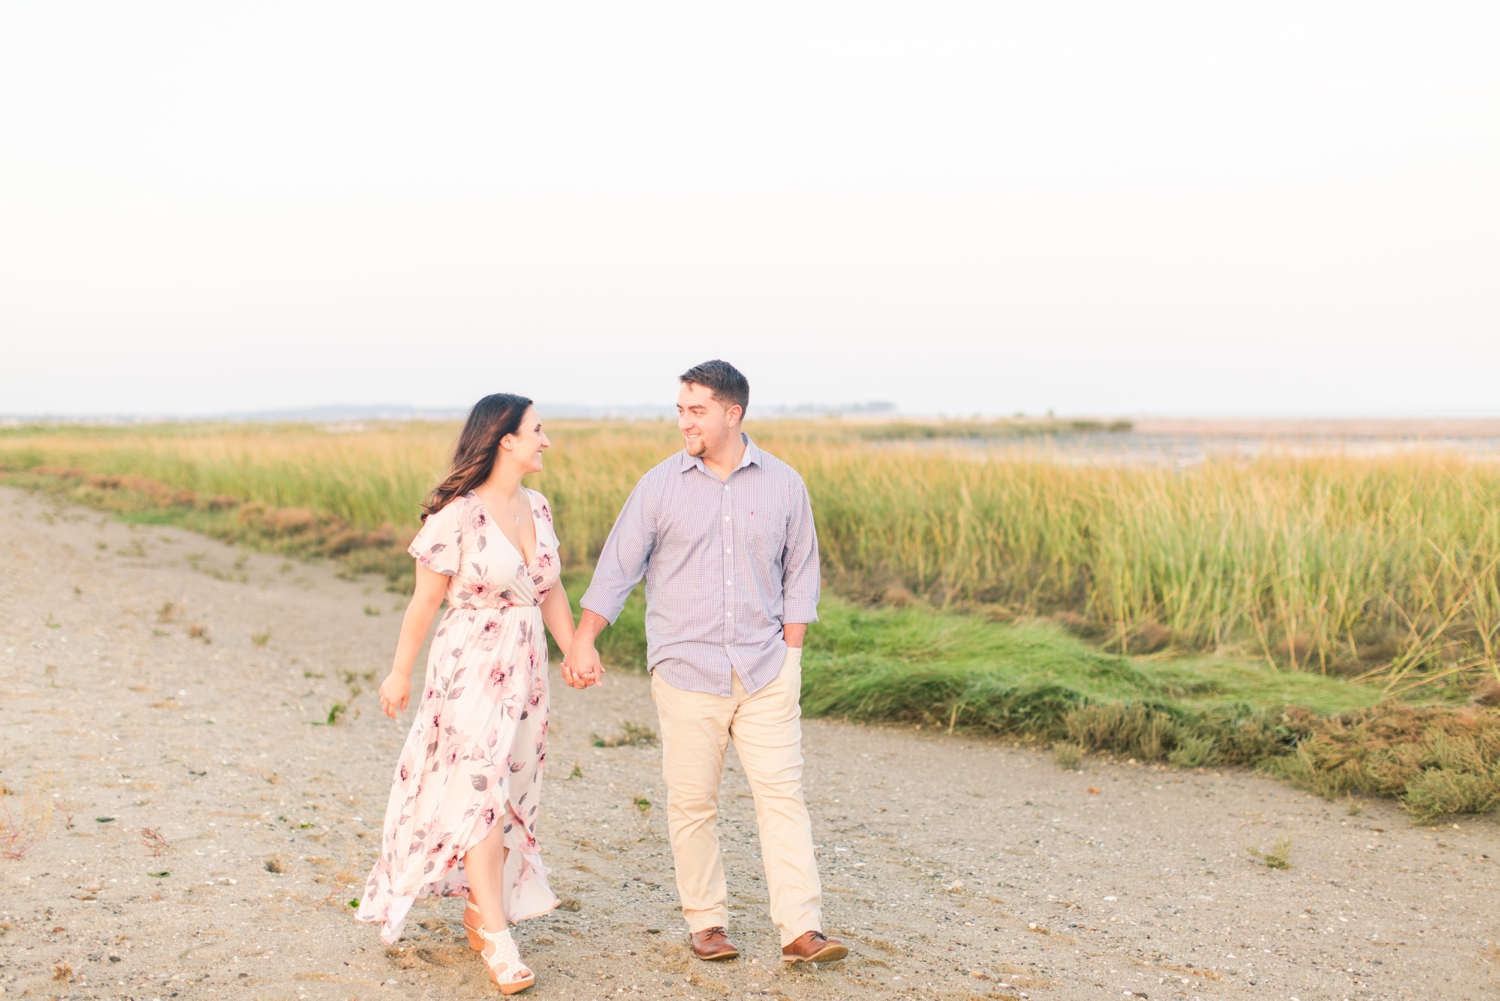 audubon-society-coastal-center-engagement-session-milford-connecticut-westchester-wedding-photographer-shaina-lee-photography-photo-34.jpg